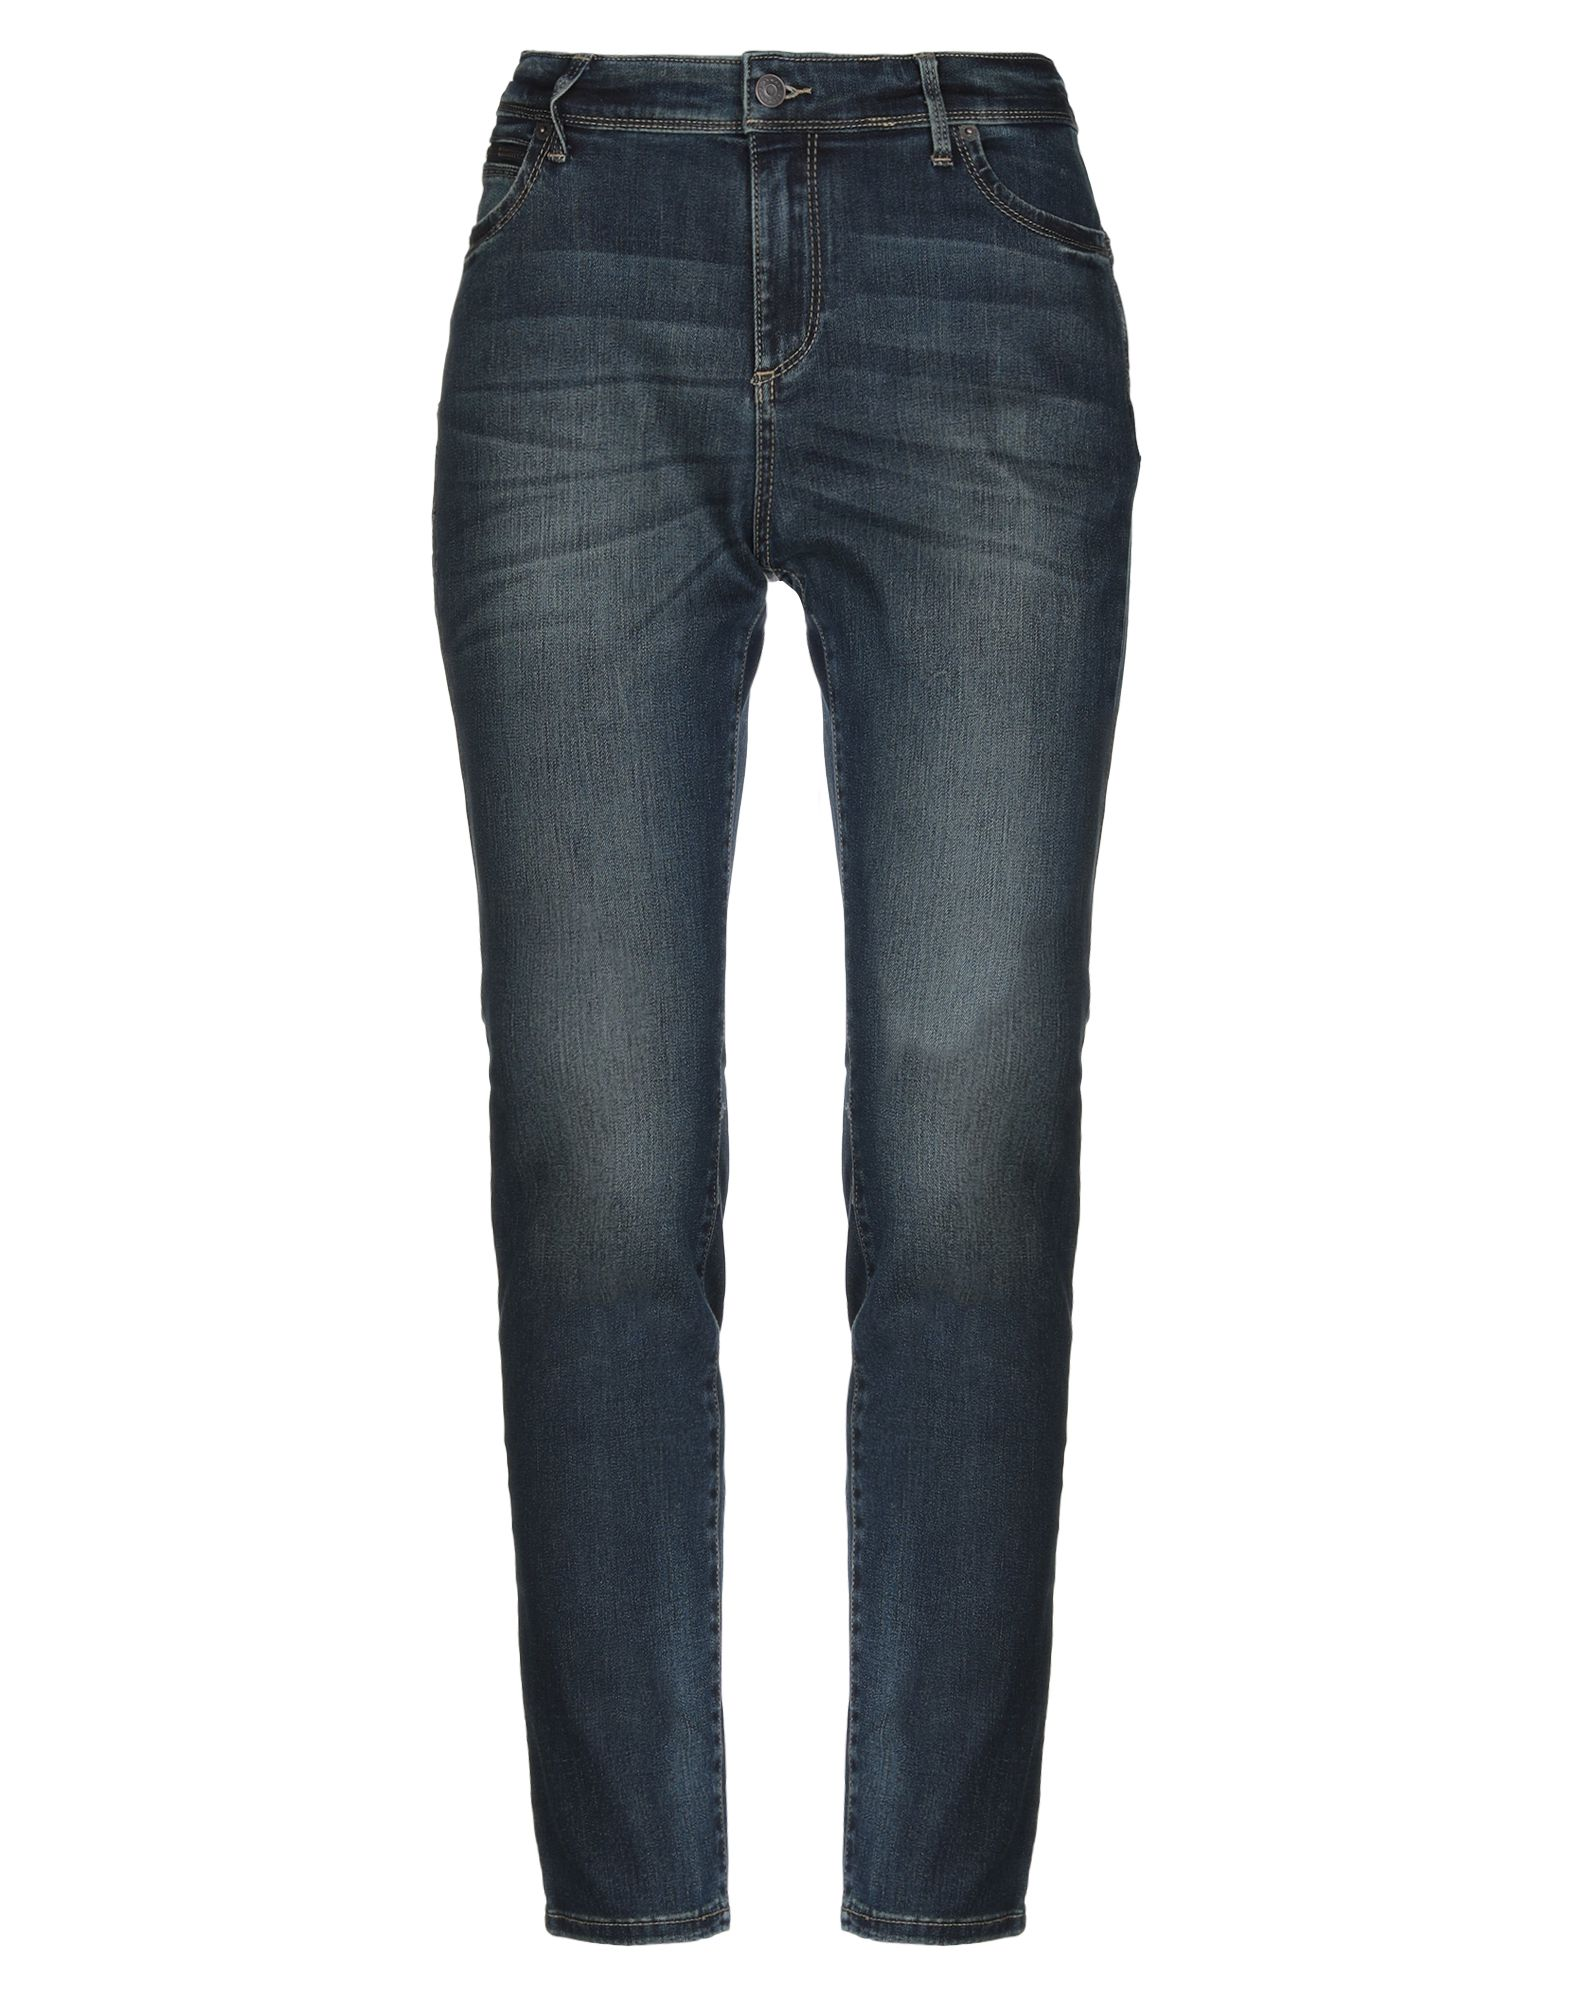 ARMANI EXCHANGE Denim pants - Item 42799772